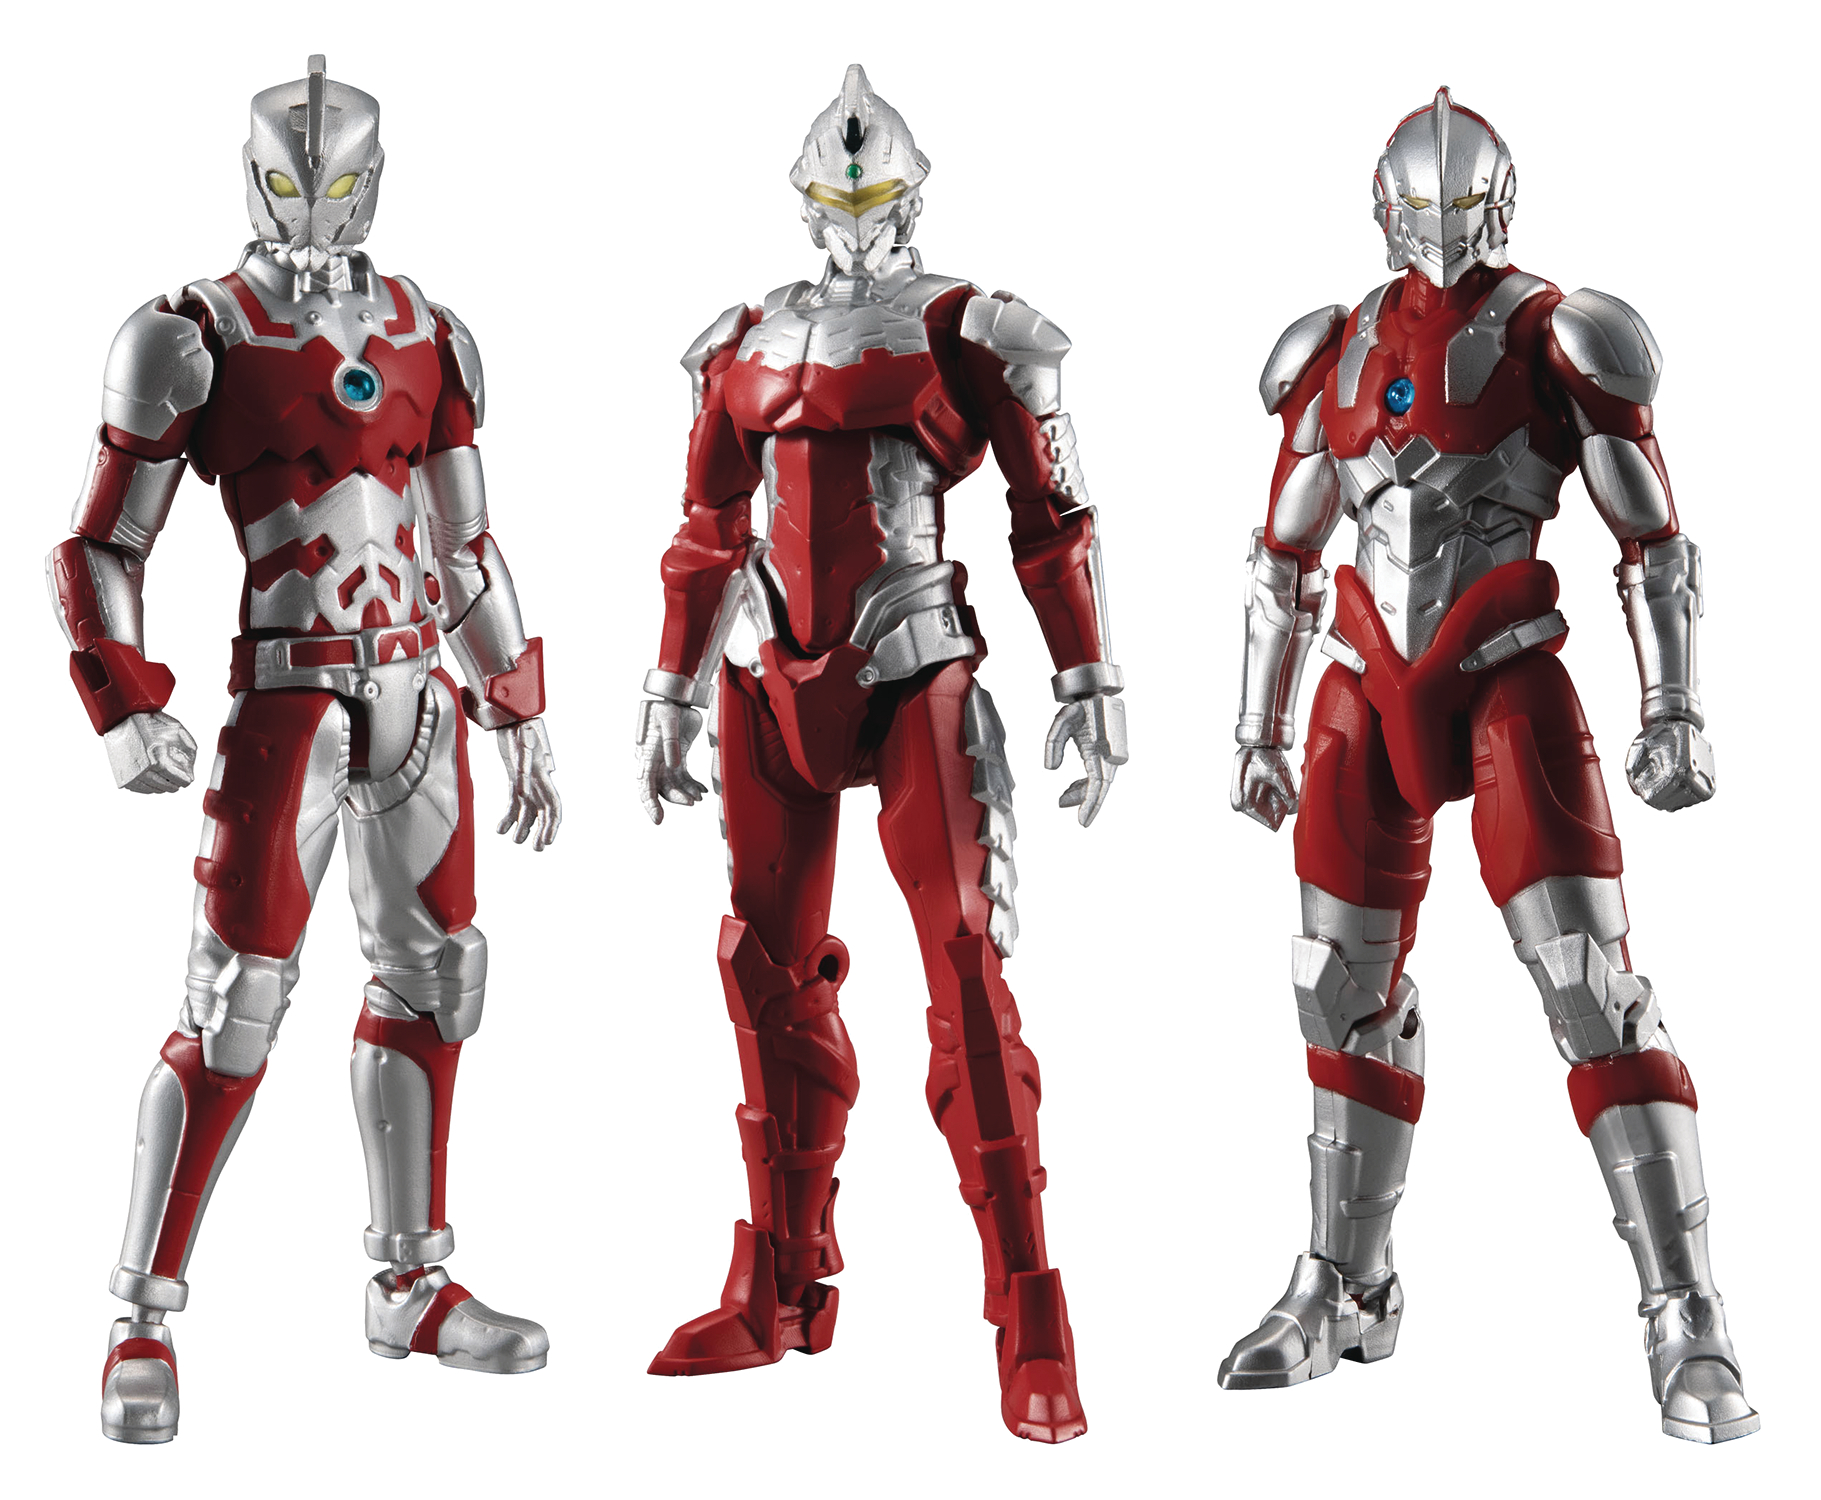 ULTRAMAN CHODO HEROES ULTRAMAN MINI FIG 8PC DS